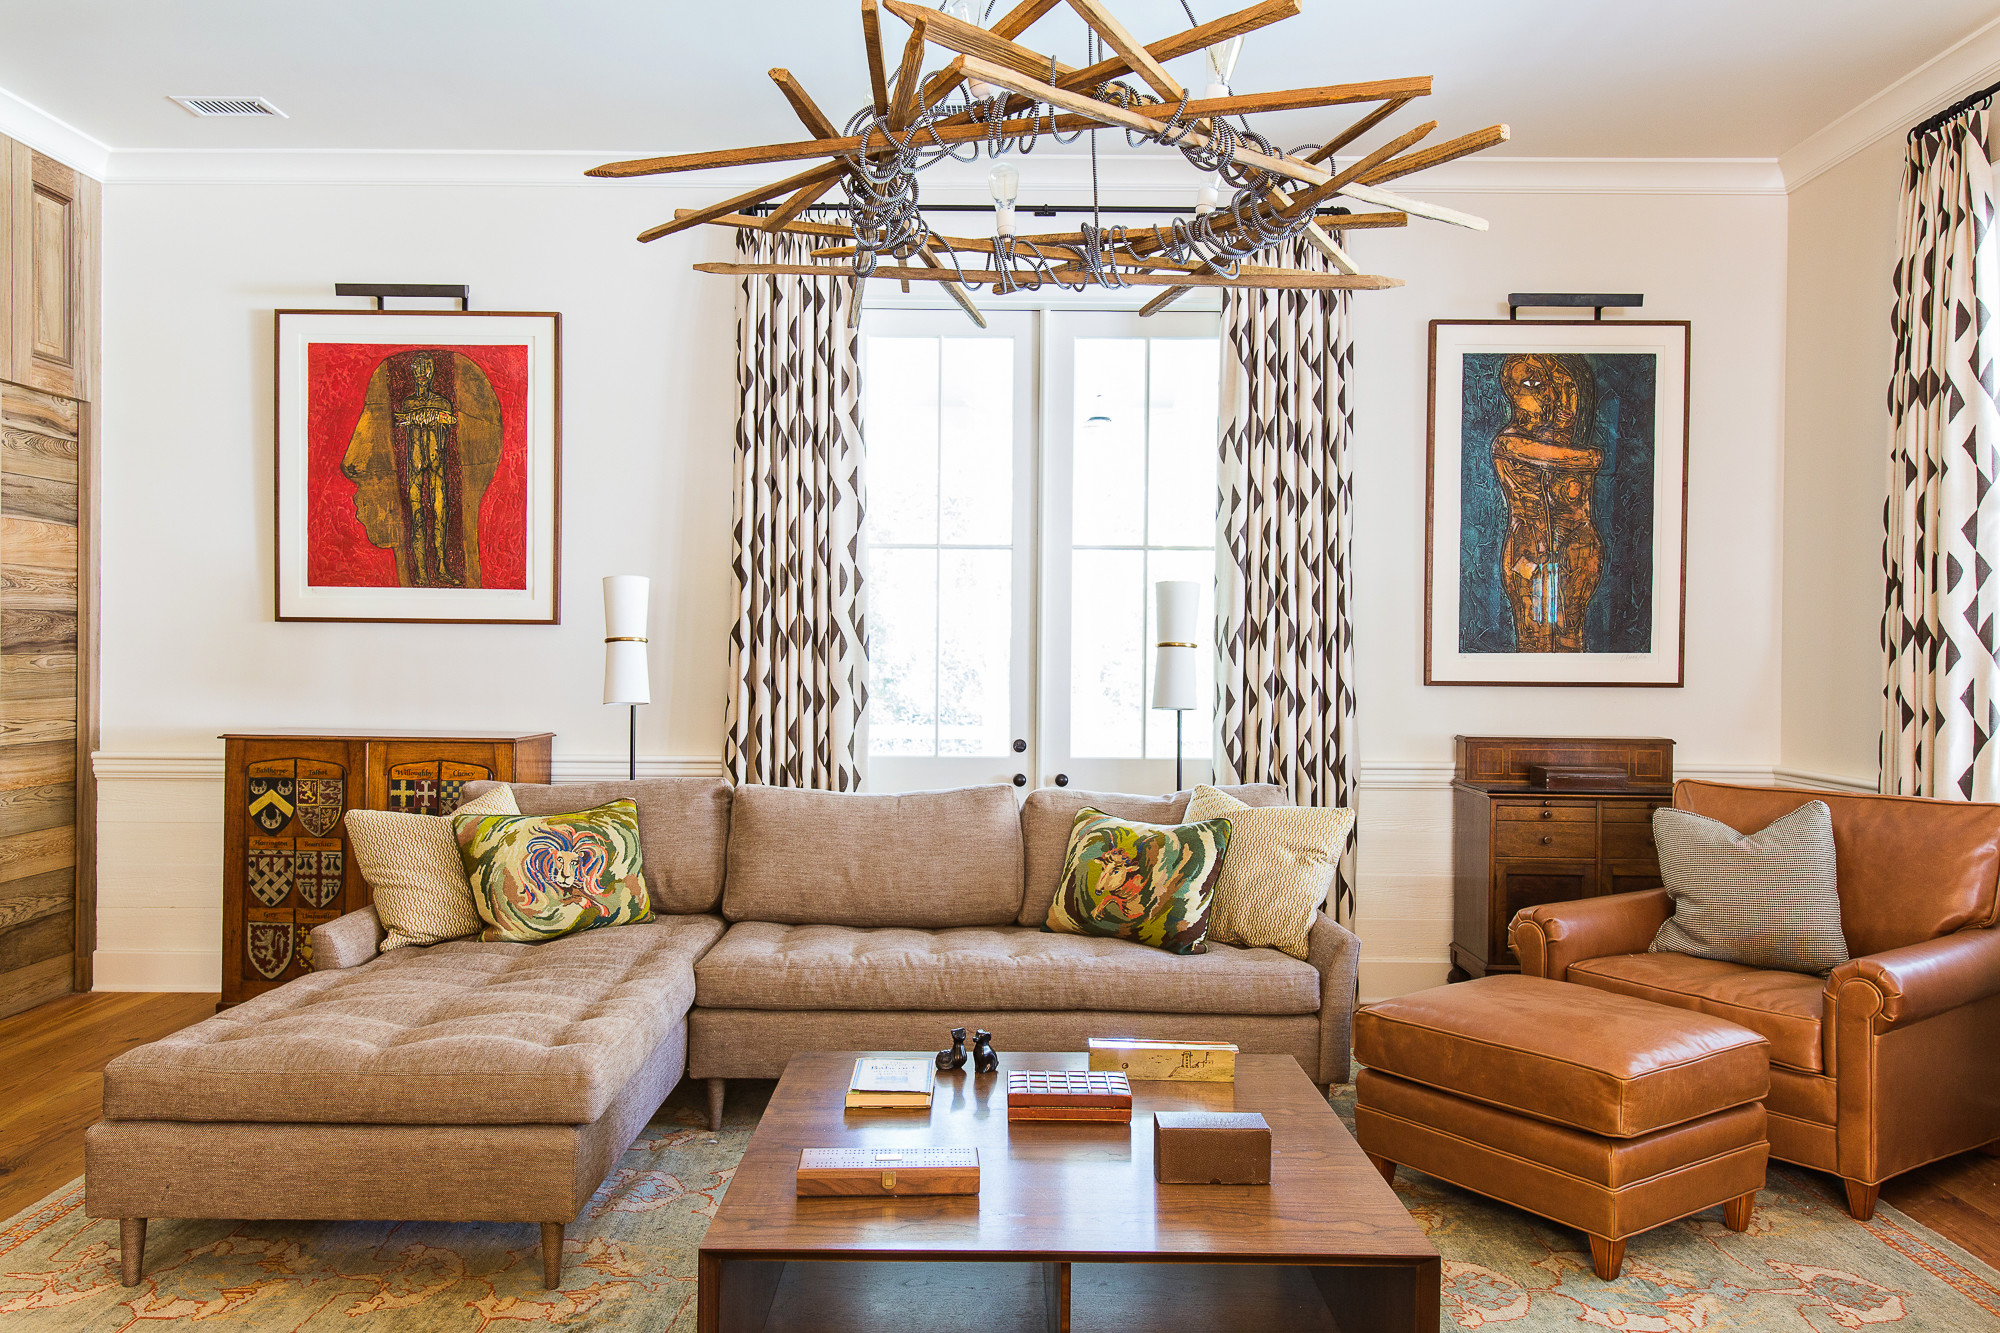 Interior designer Cortney Bishop created a warm and modern beach home by combining pieces that incorporated both refined masculinity and an homage to the past. In the family room, an Old Modern Objectstobacco stick chandelier holds center court to the traditional Ralph Lauren leather chair and ottomanand the Verellen leather sectional sofa below.